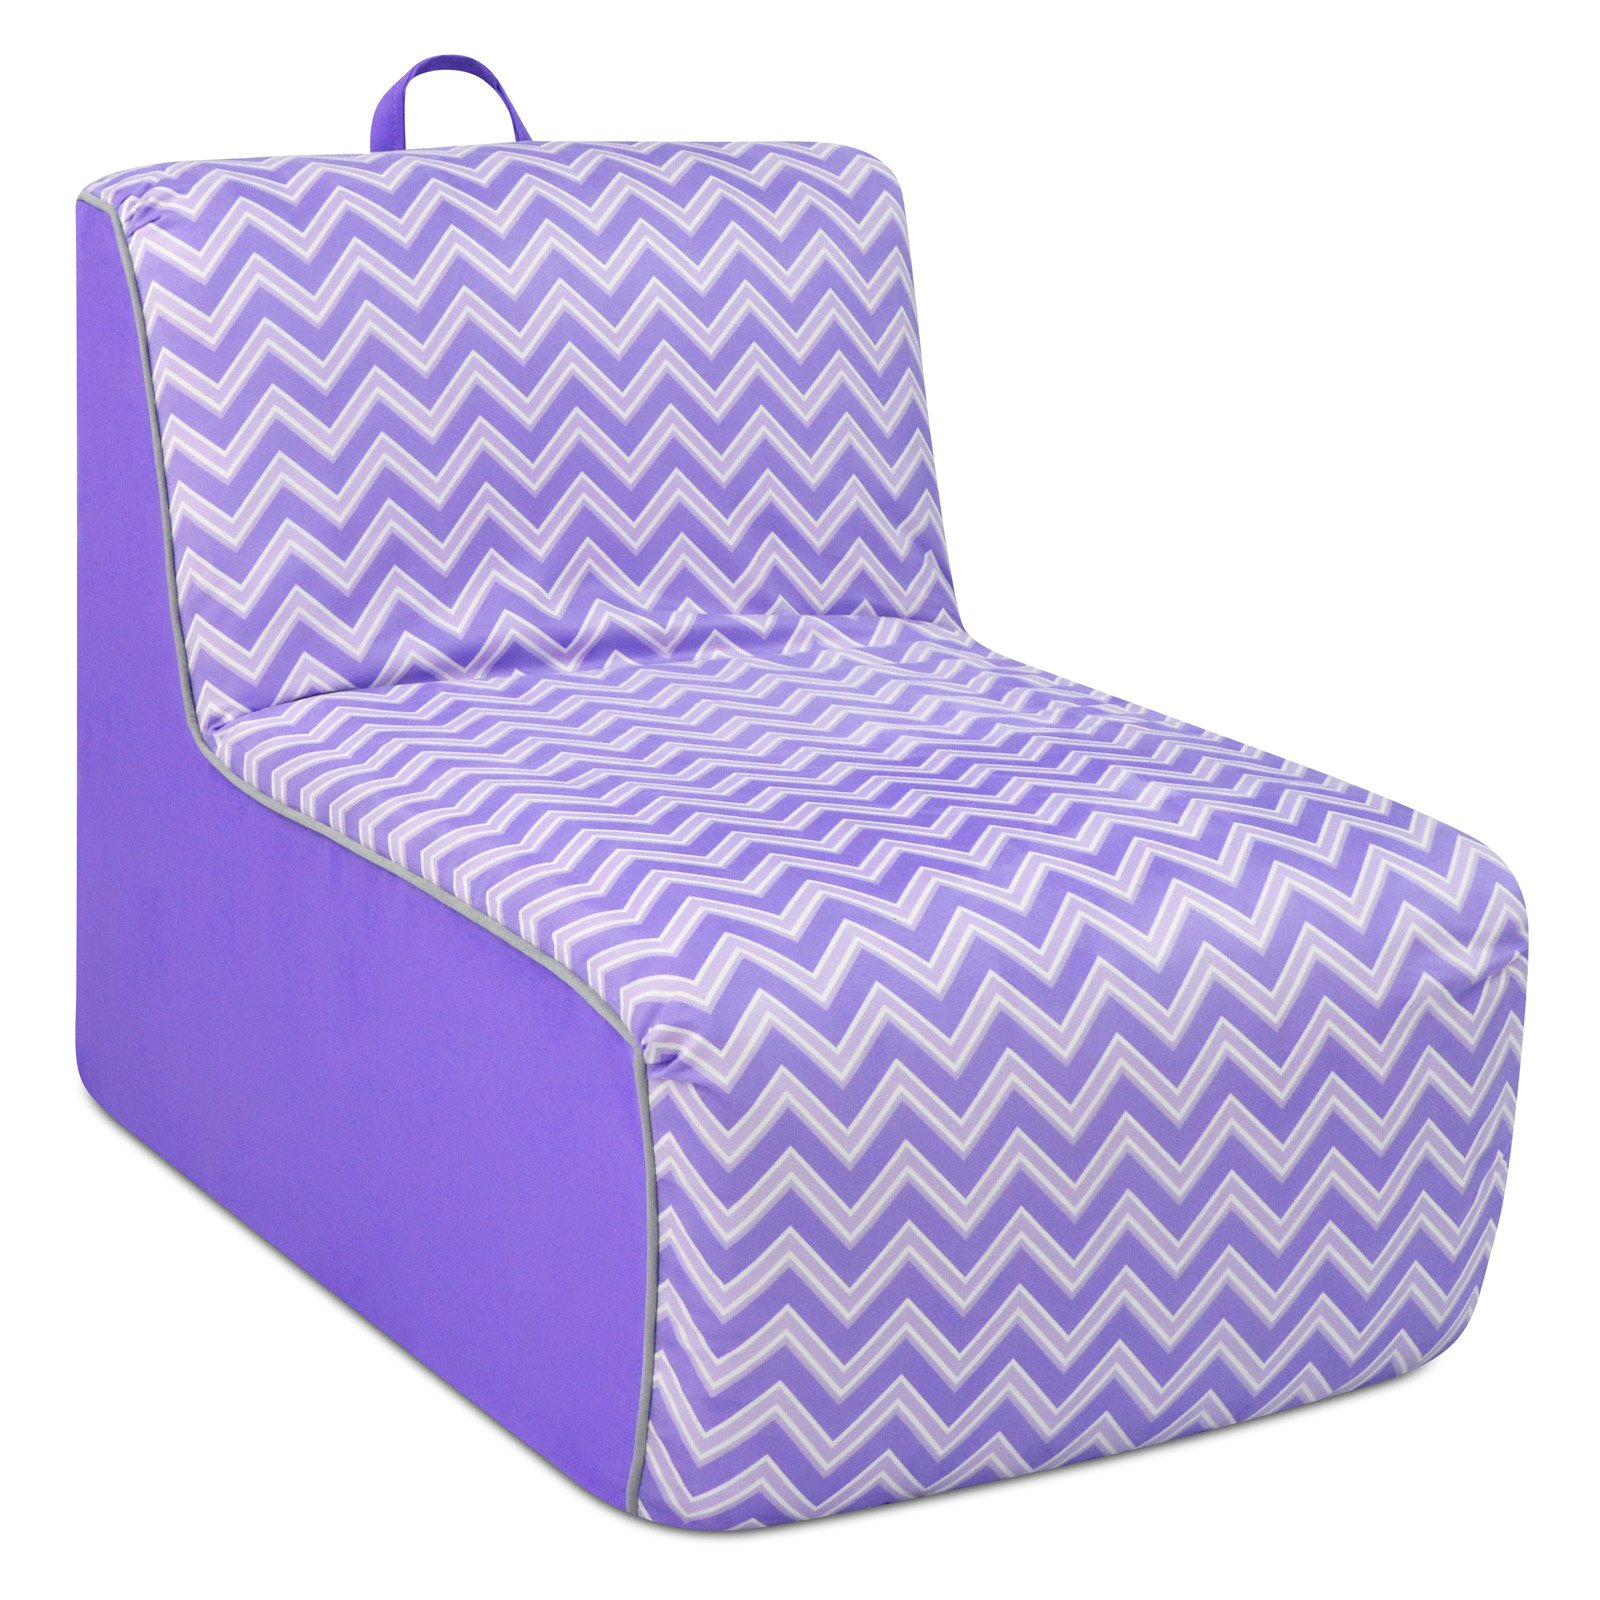 Kangaroo Trading Co. Tween Lounger w/handle - Izzy Plum with Plum and Pebbles welt trim